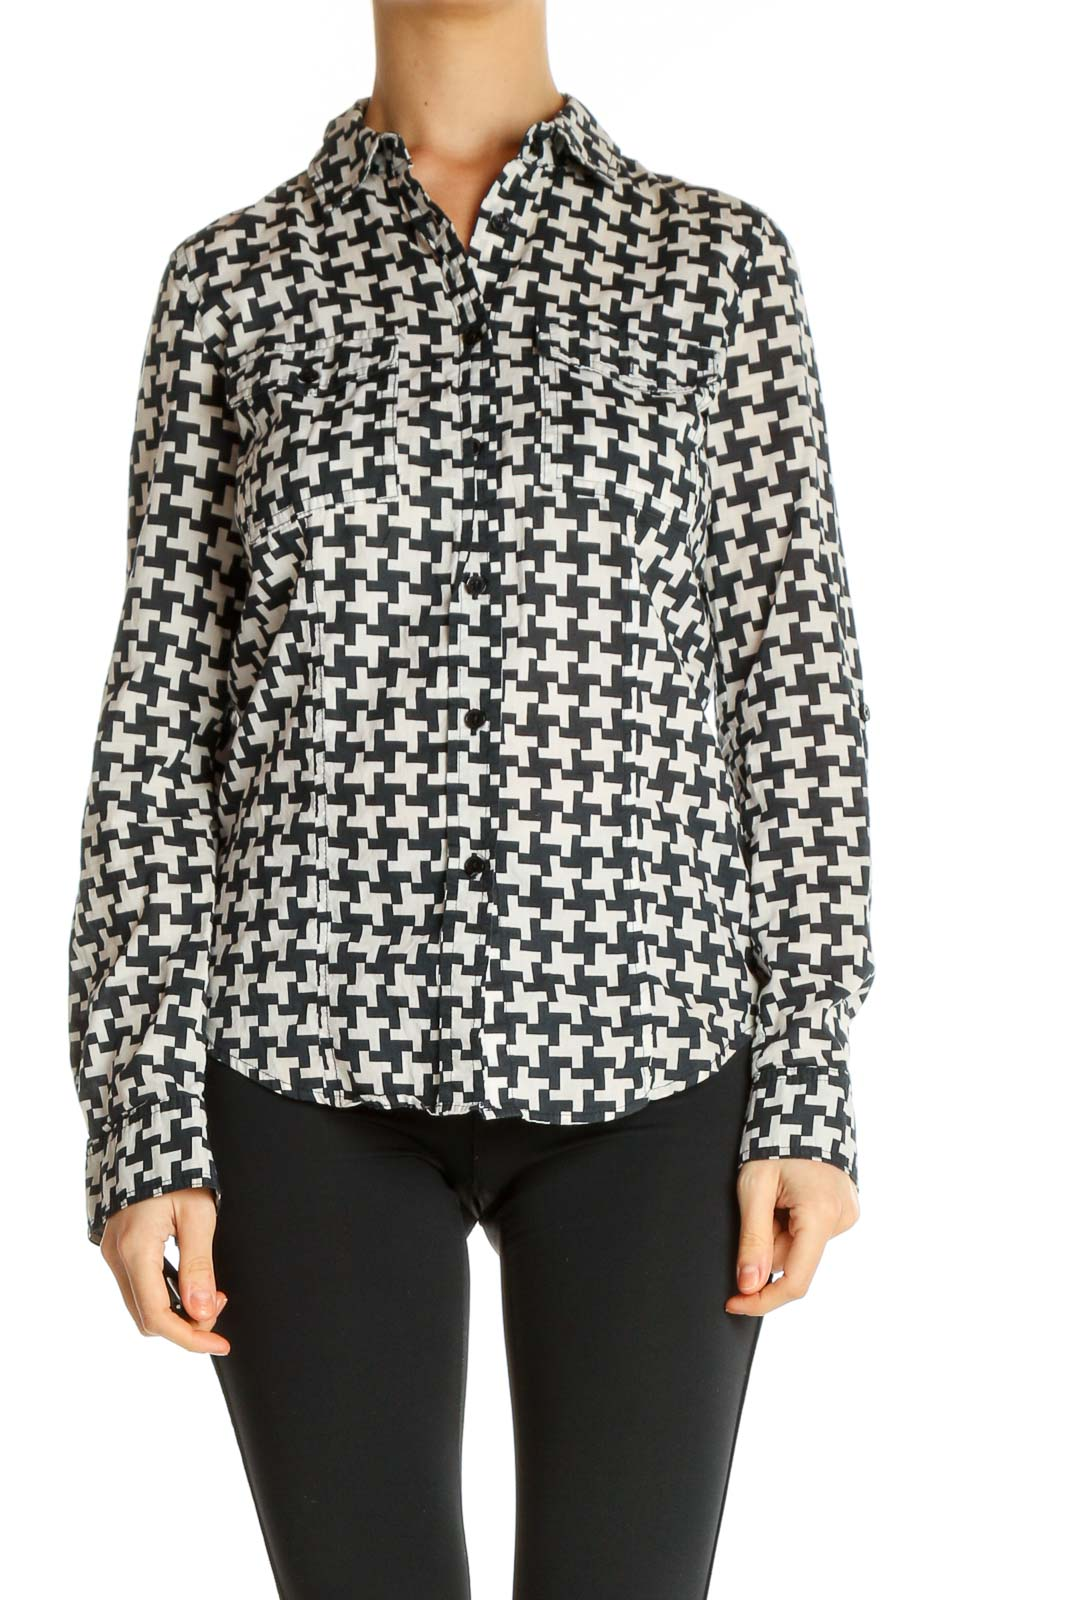 White Houndstooth Formal Shirt Front